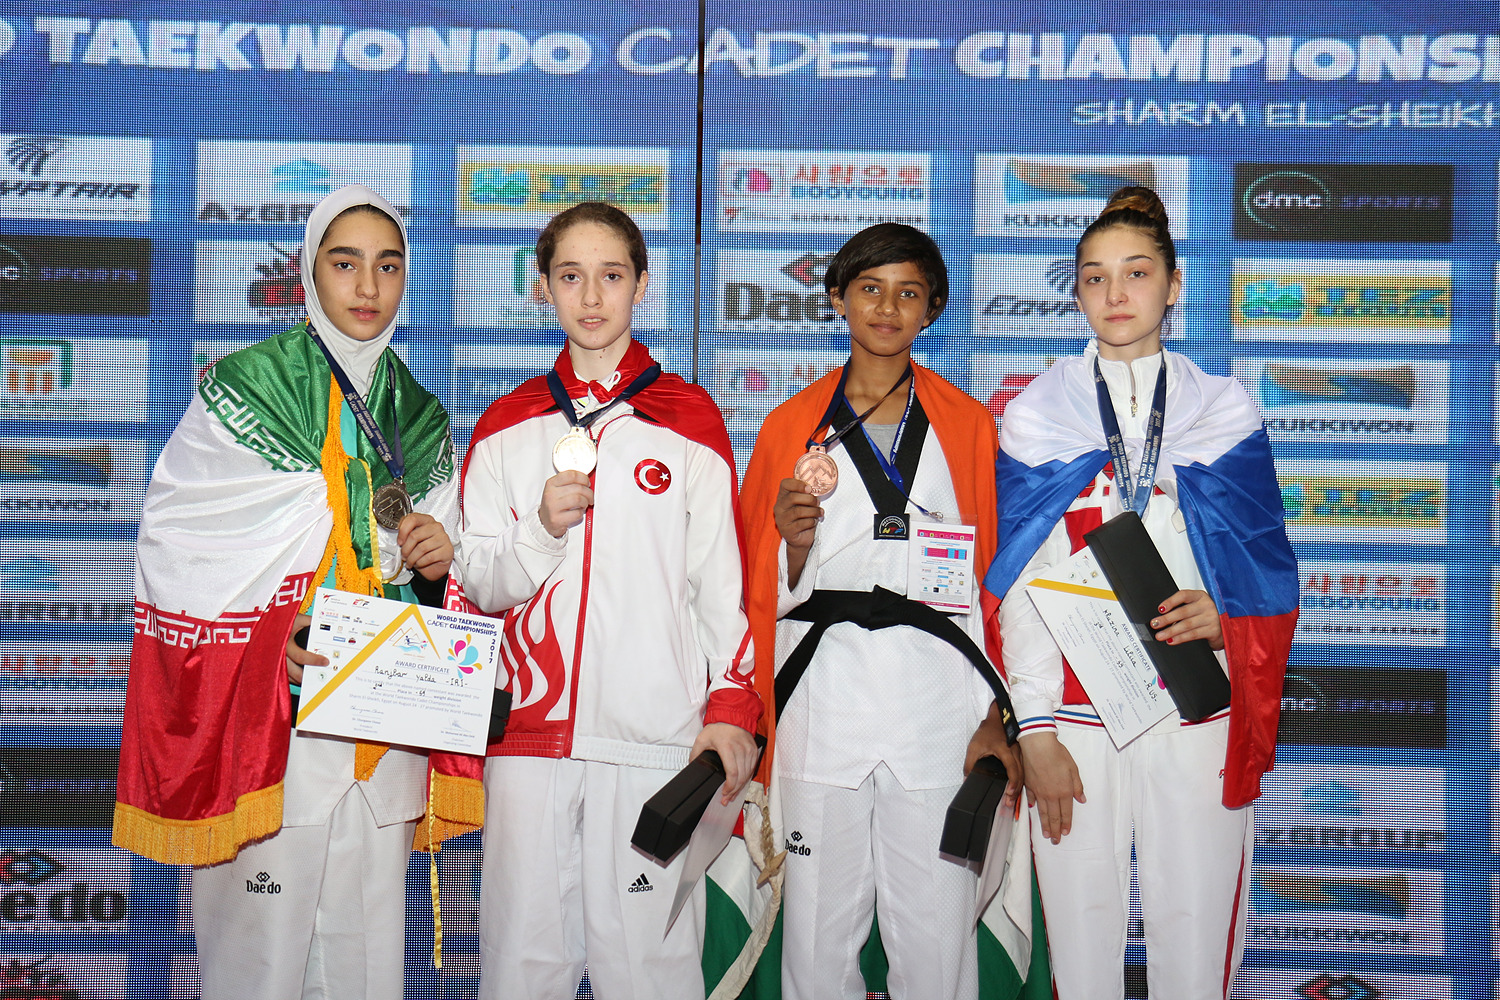 Award ceremony for F -59kg during the Sharm El Sheikh 2017 World Taekwondo Cadet Championships on August 26